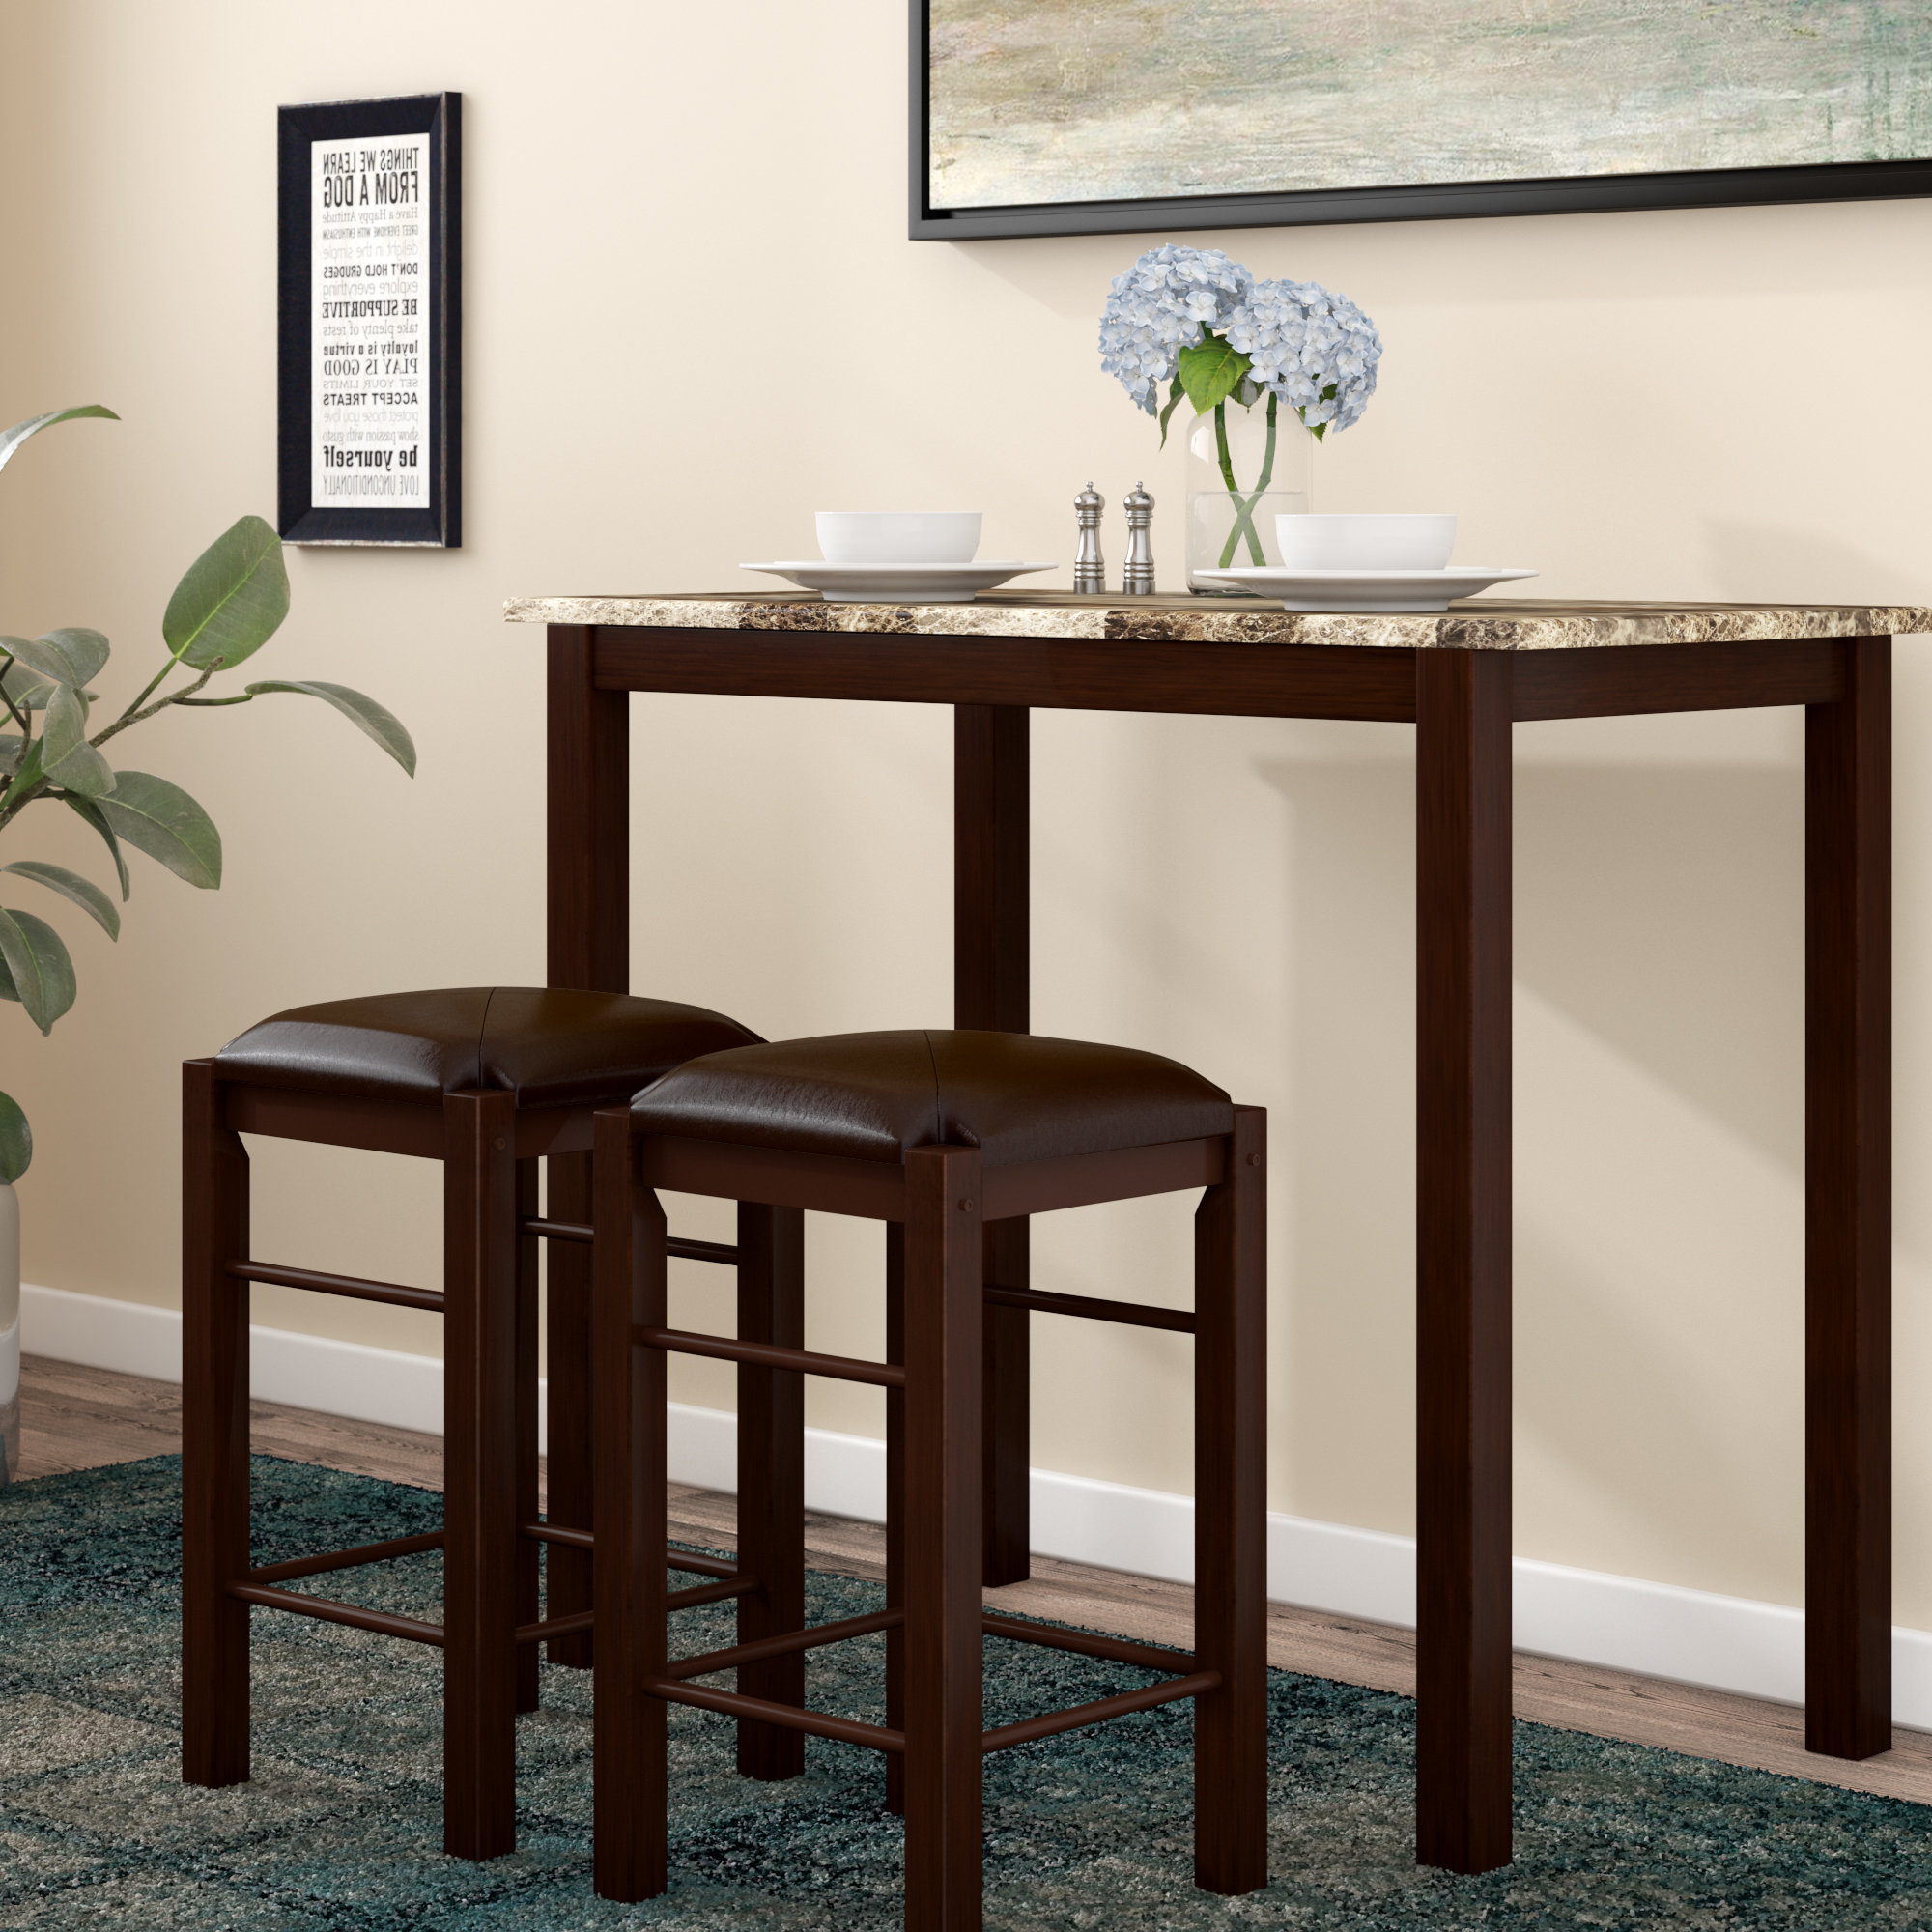 Poynter 3 Piece Drop Leaf Dining Sets Intended For Recent Winston Porter Penelope 3 Piece Counter Height Wood Dining Set (View 6 of 25)